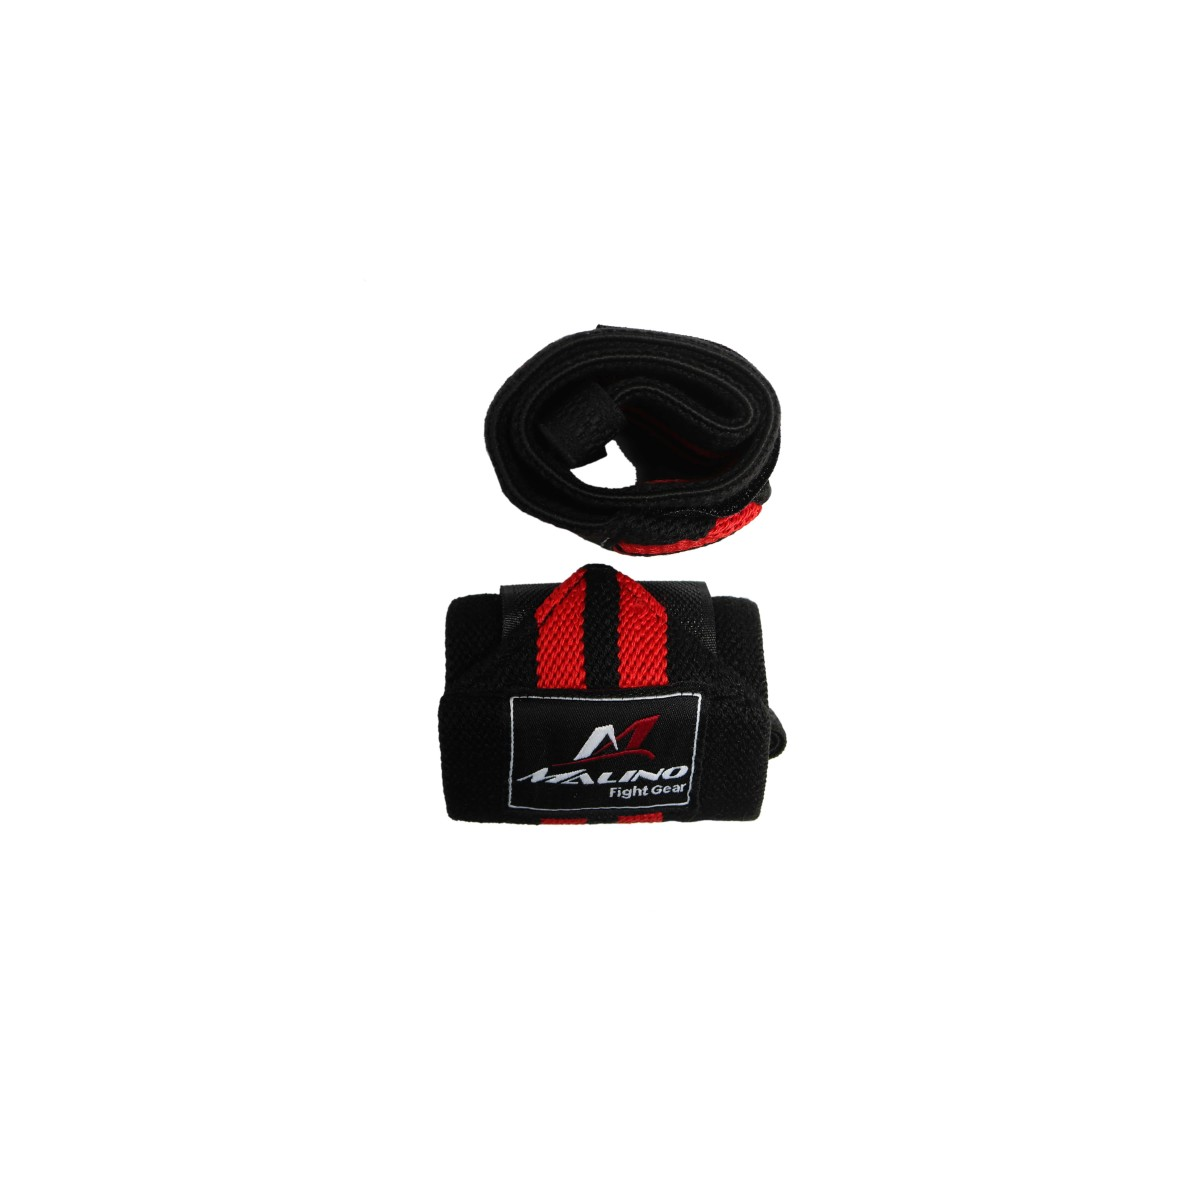 Malino Wrist Wrap Black Red